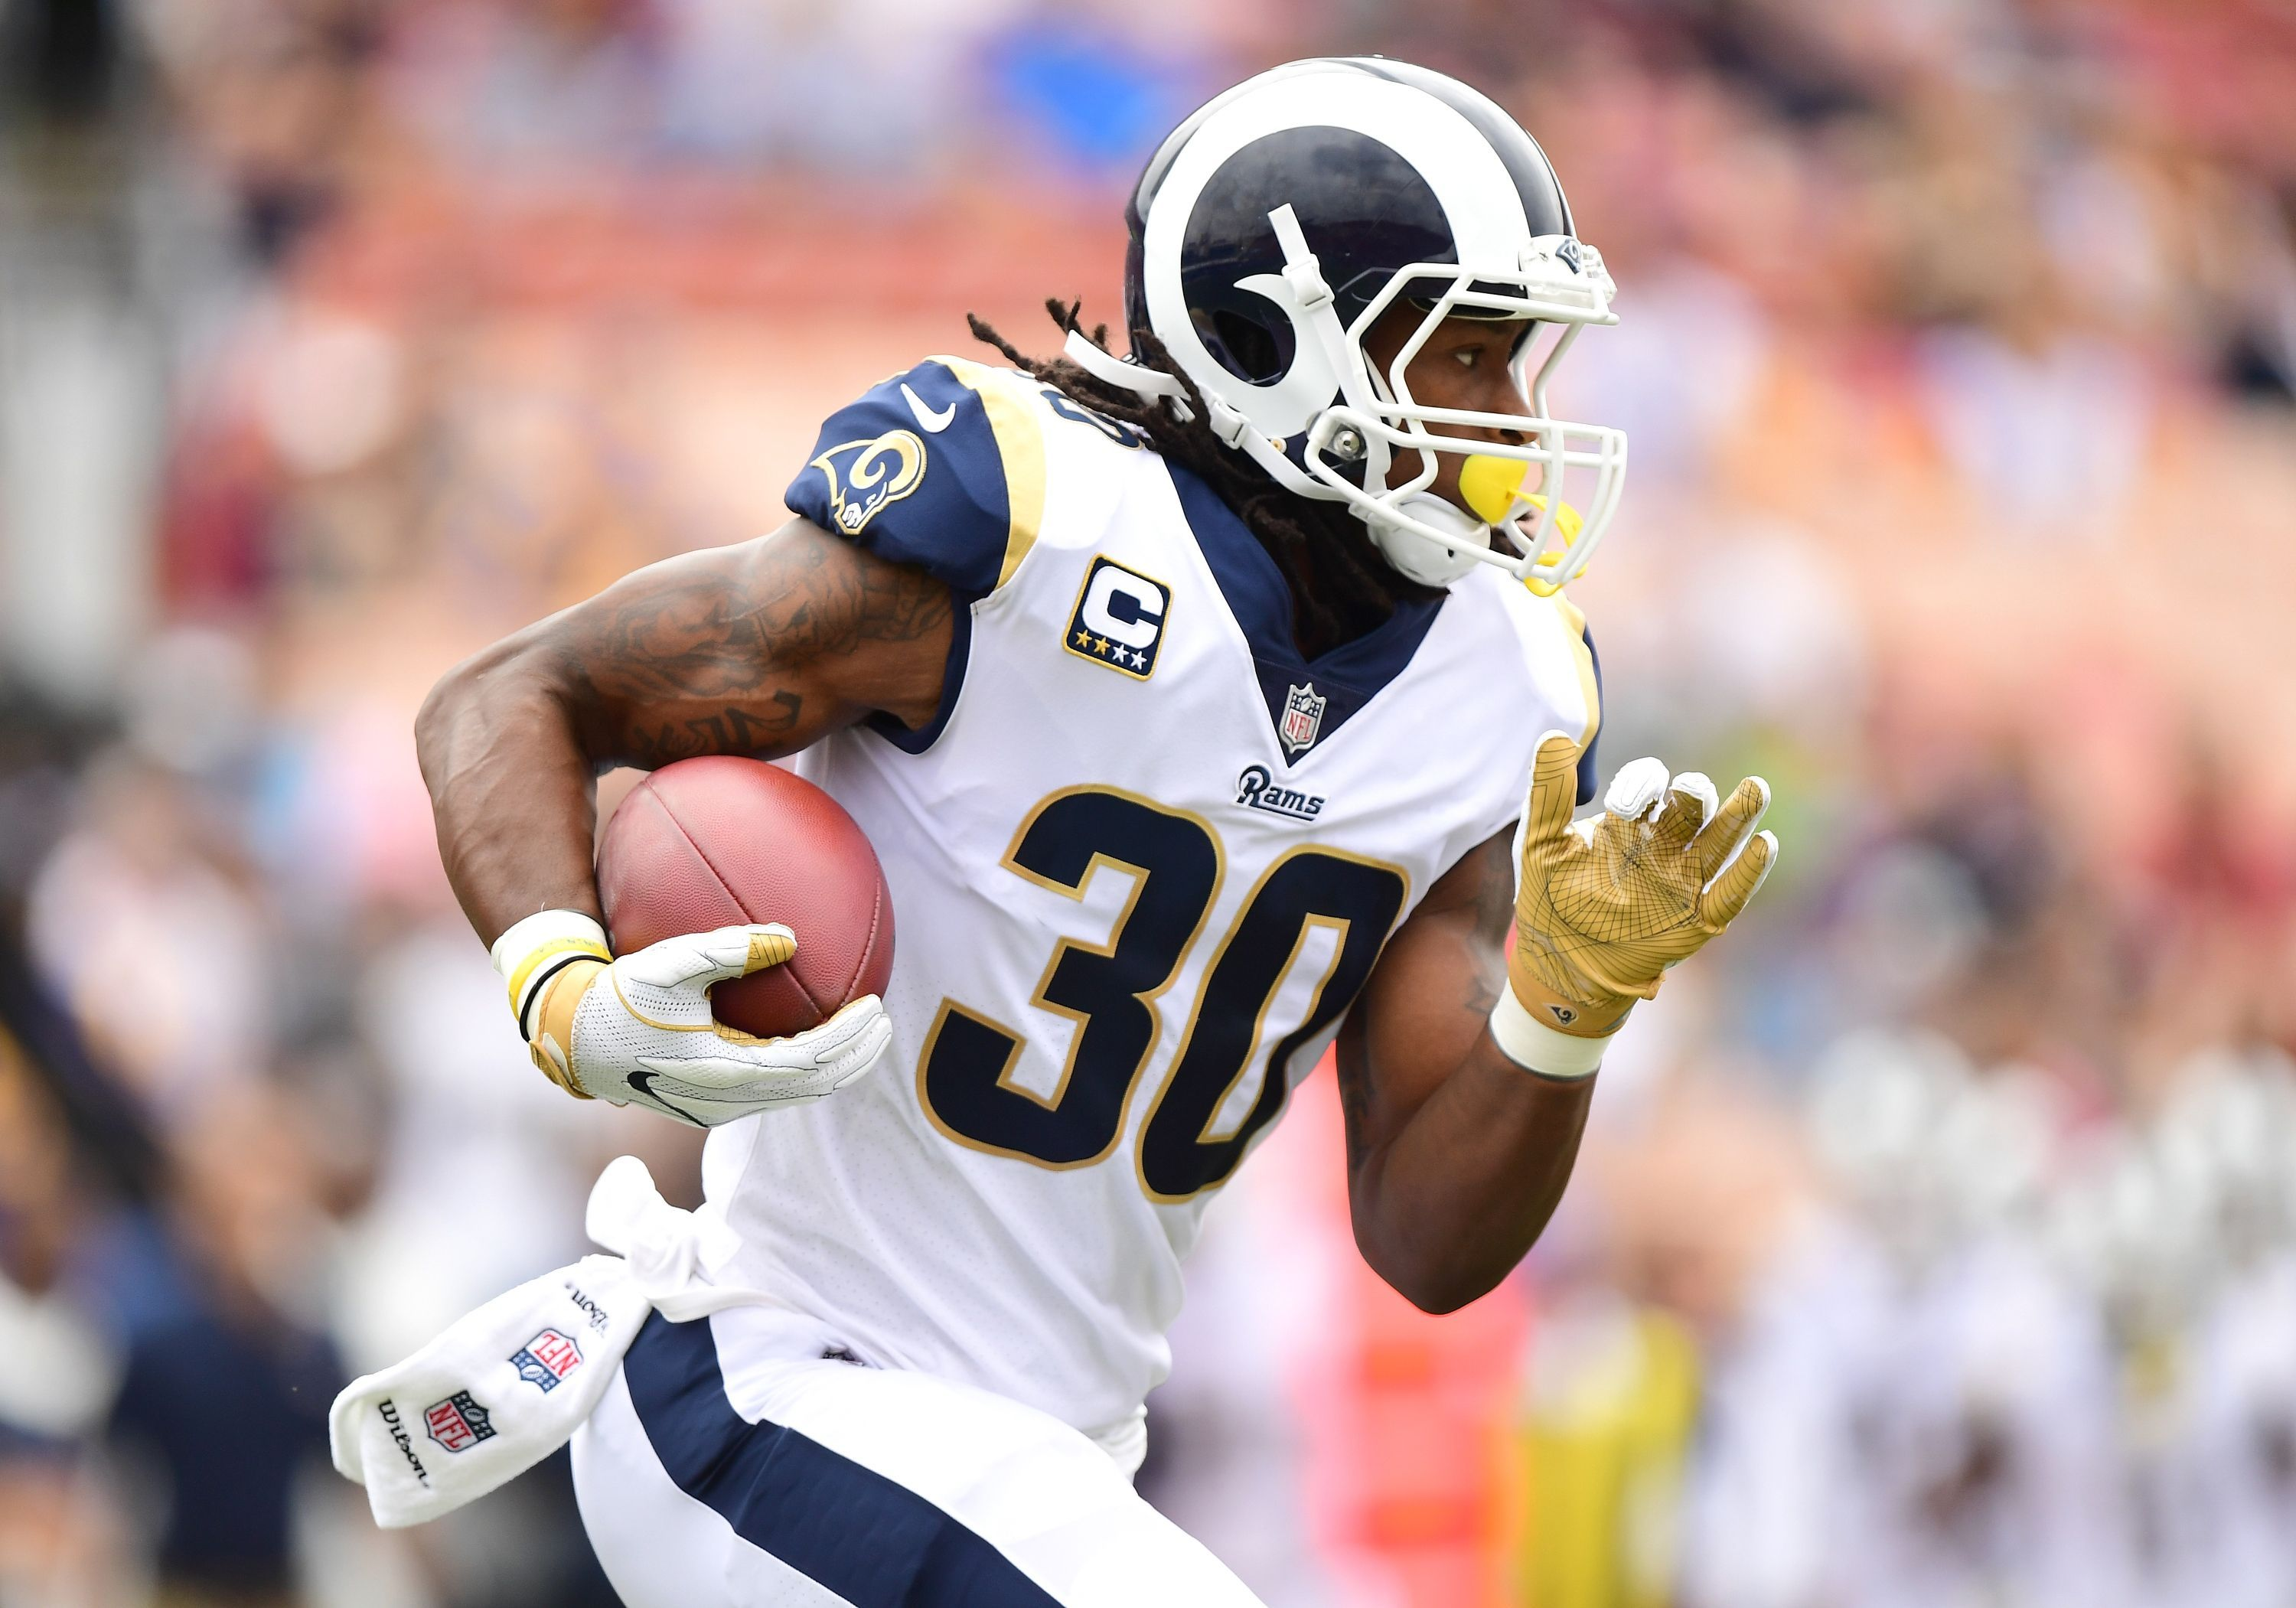 Todd Gurley hurdles defender before reaching out for touchdown